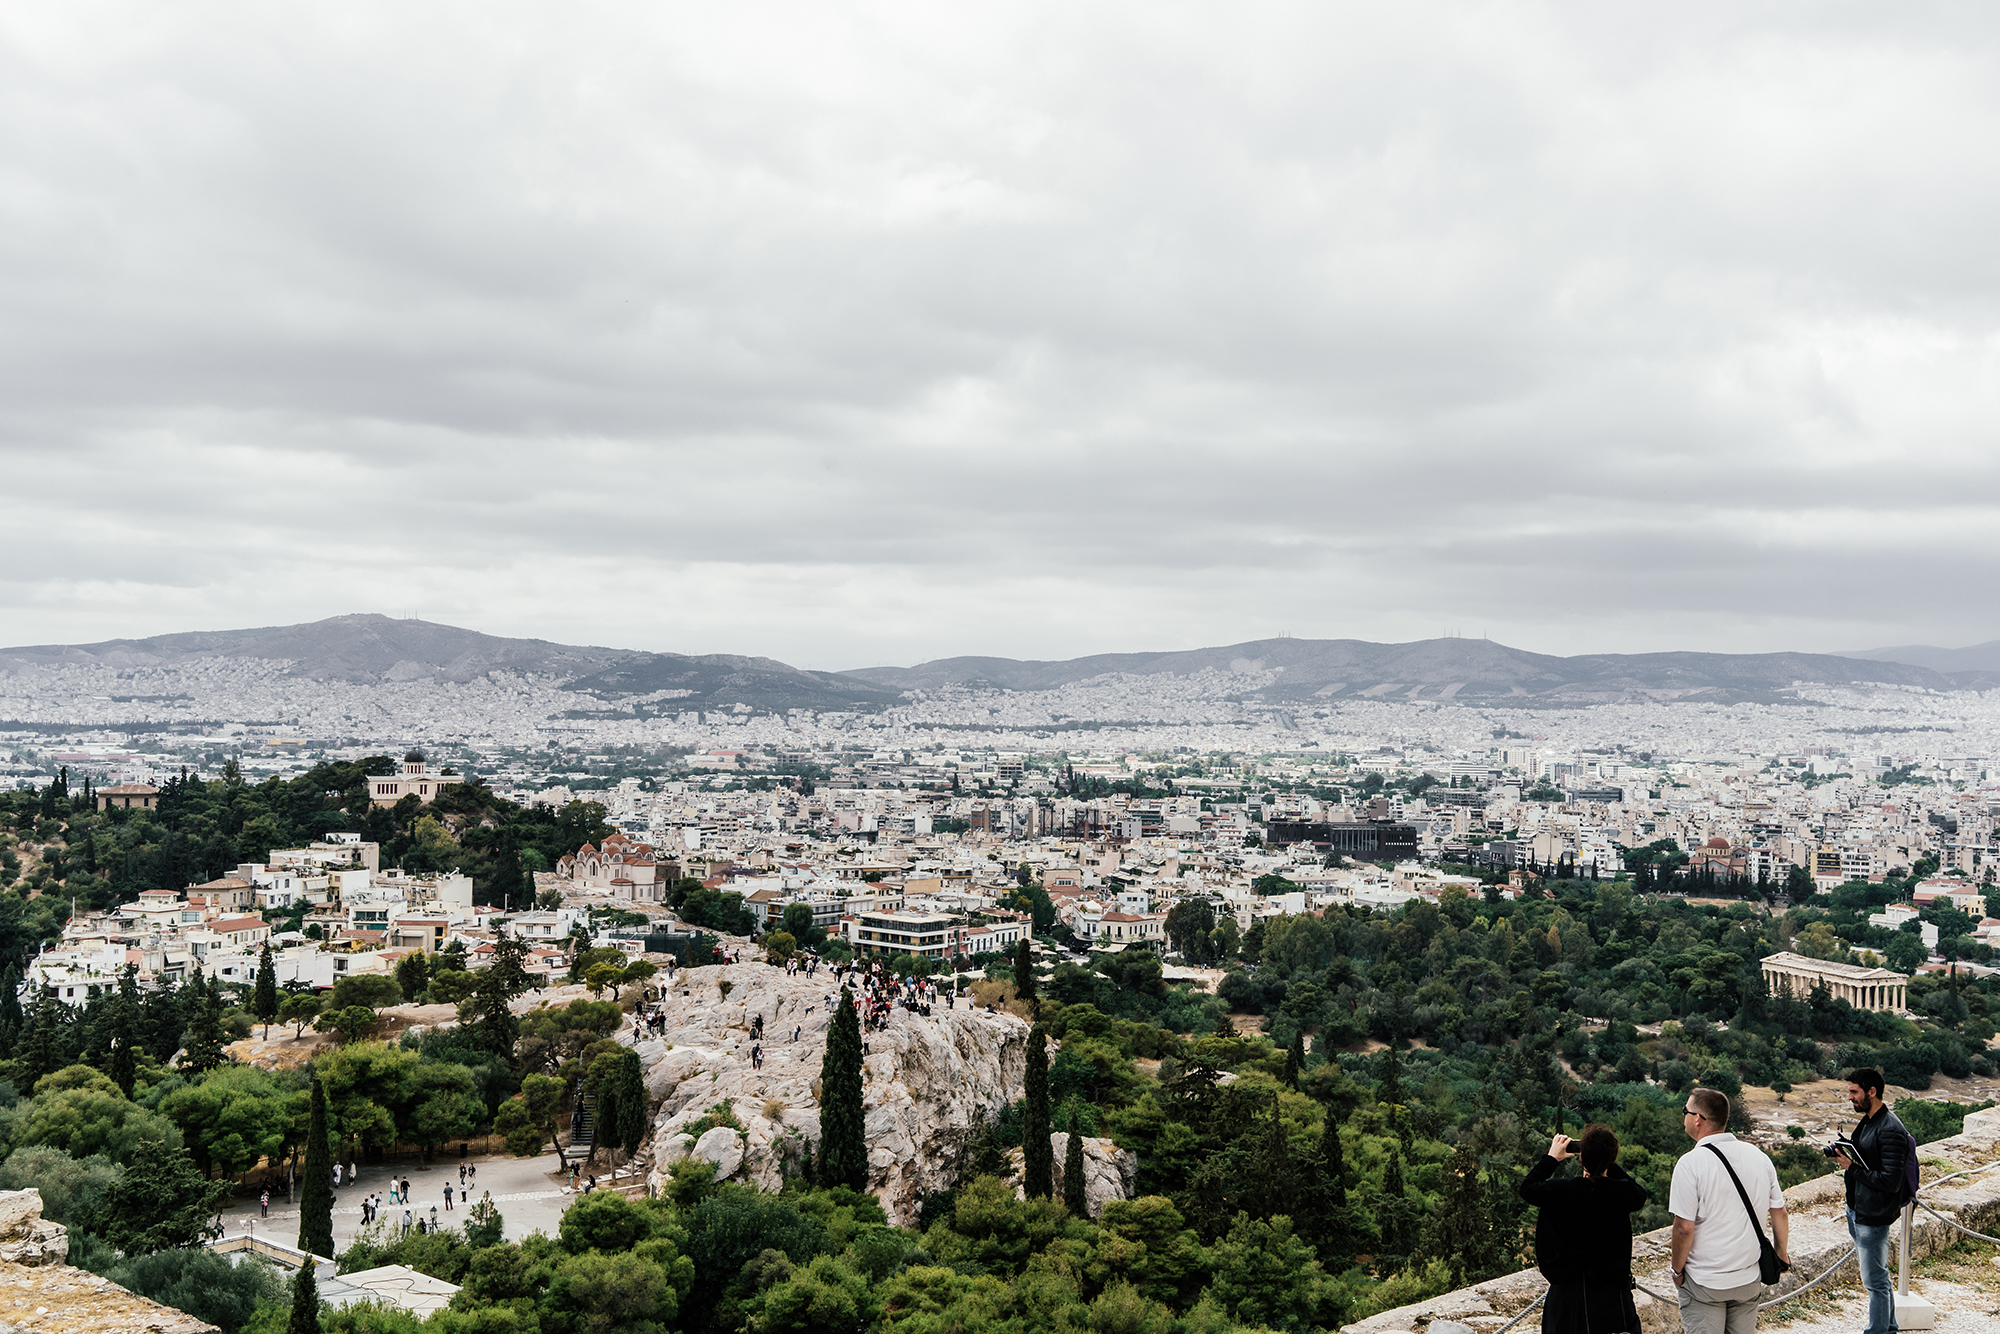 Views from the  Acropolis